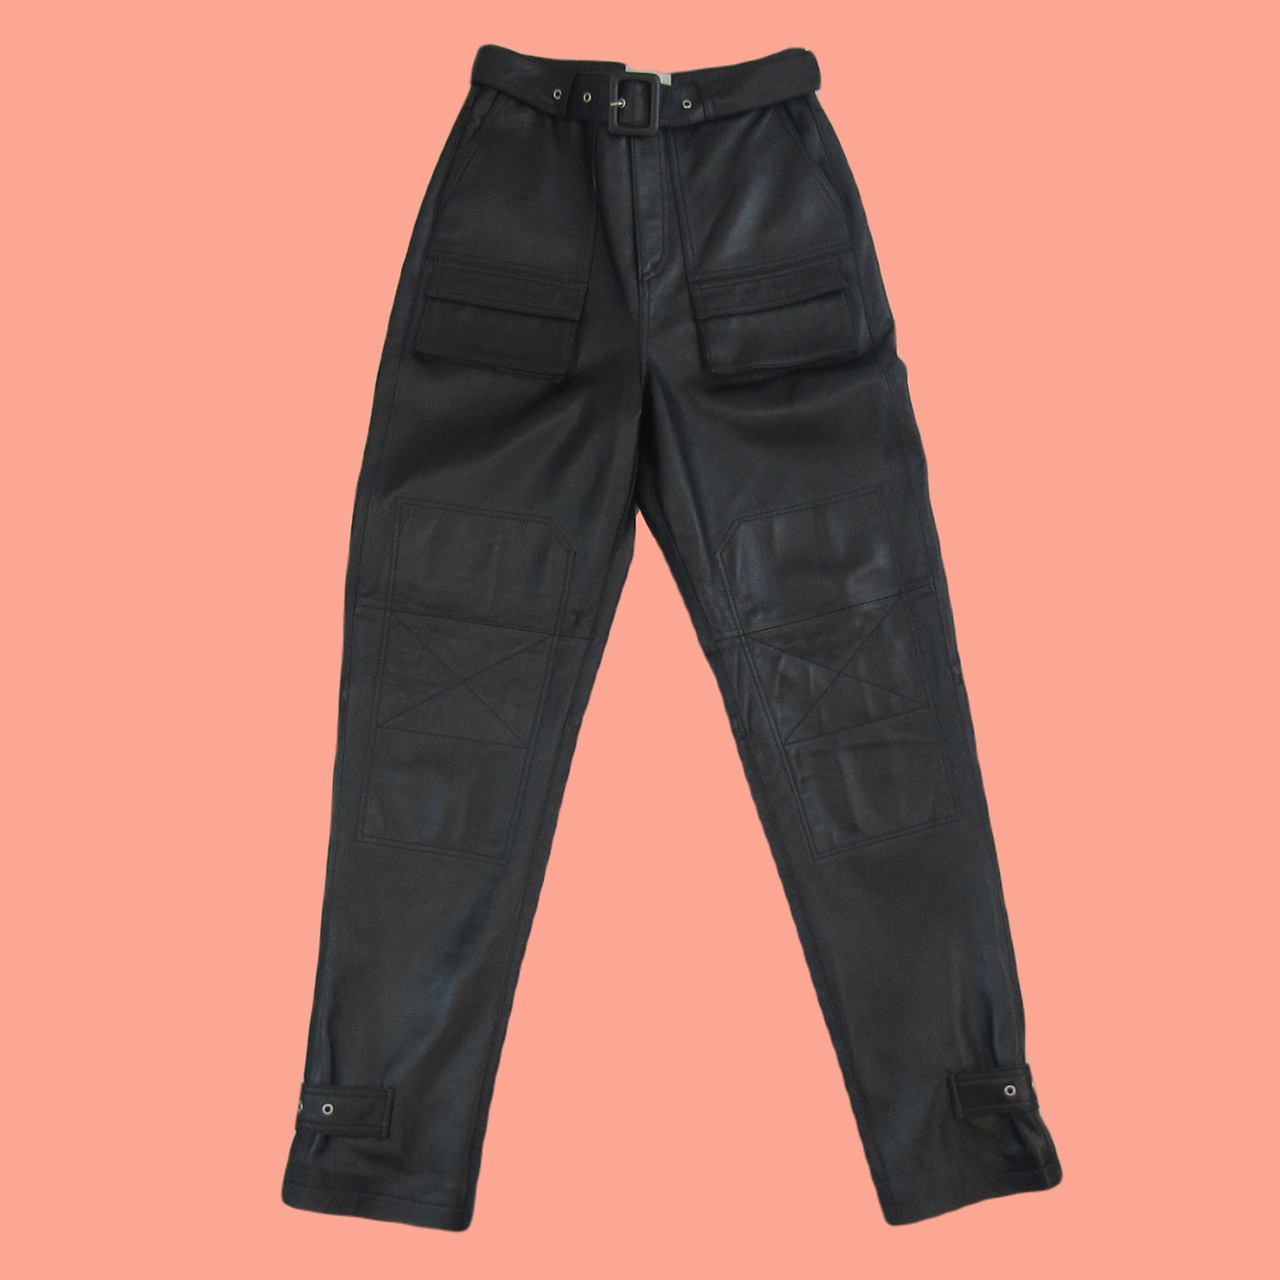 Product Image 1 - Ducie London Black Leather Trousers